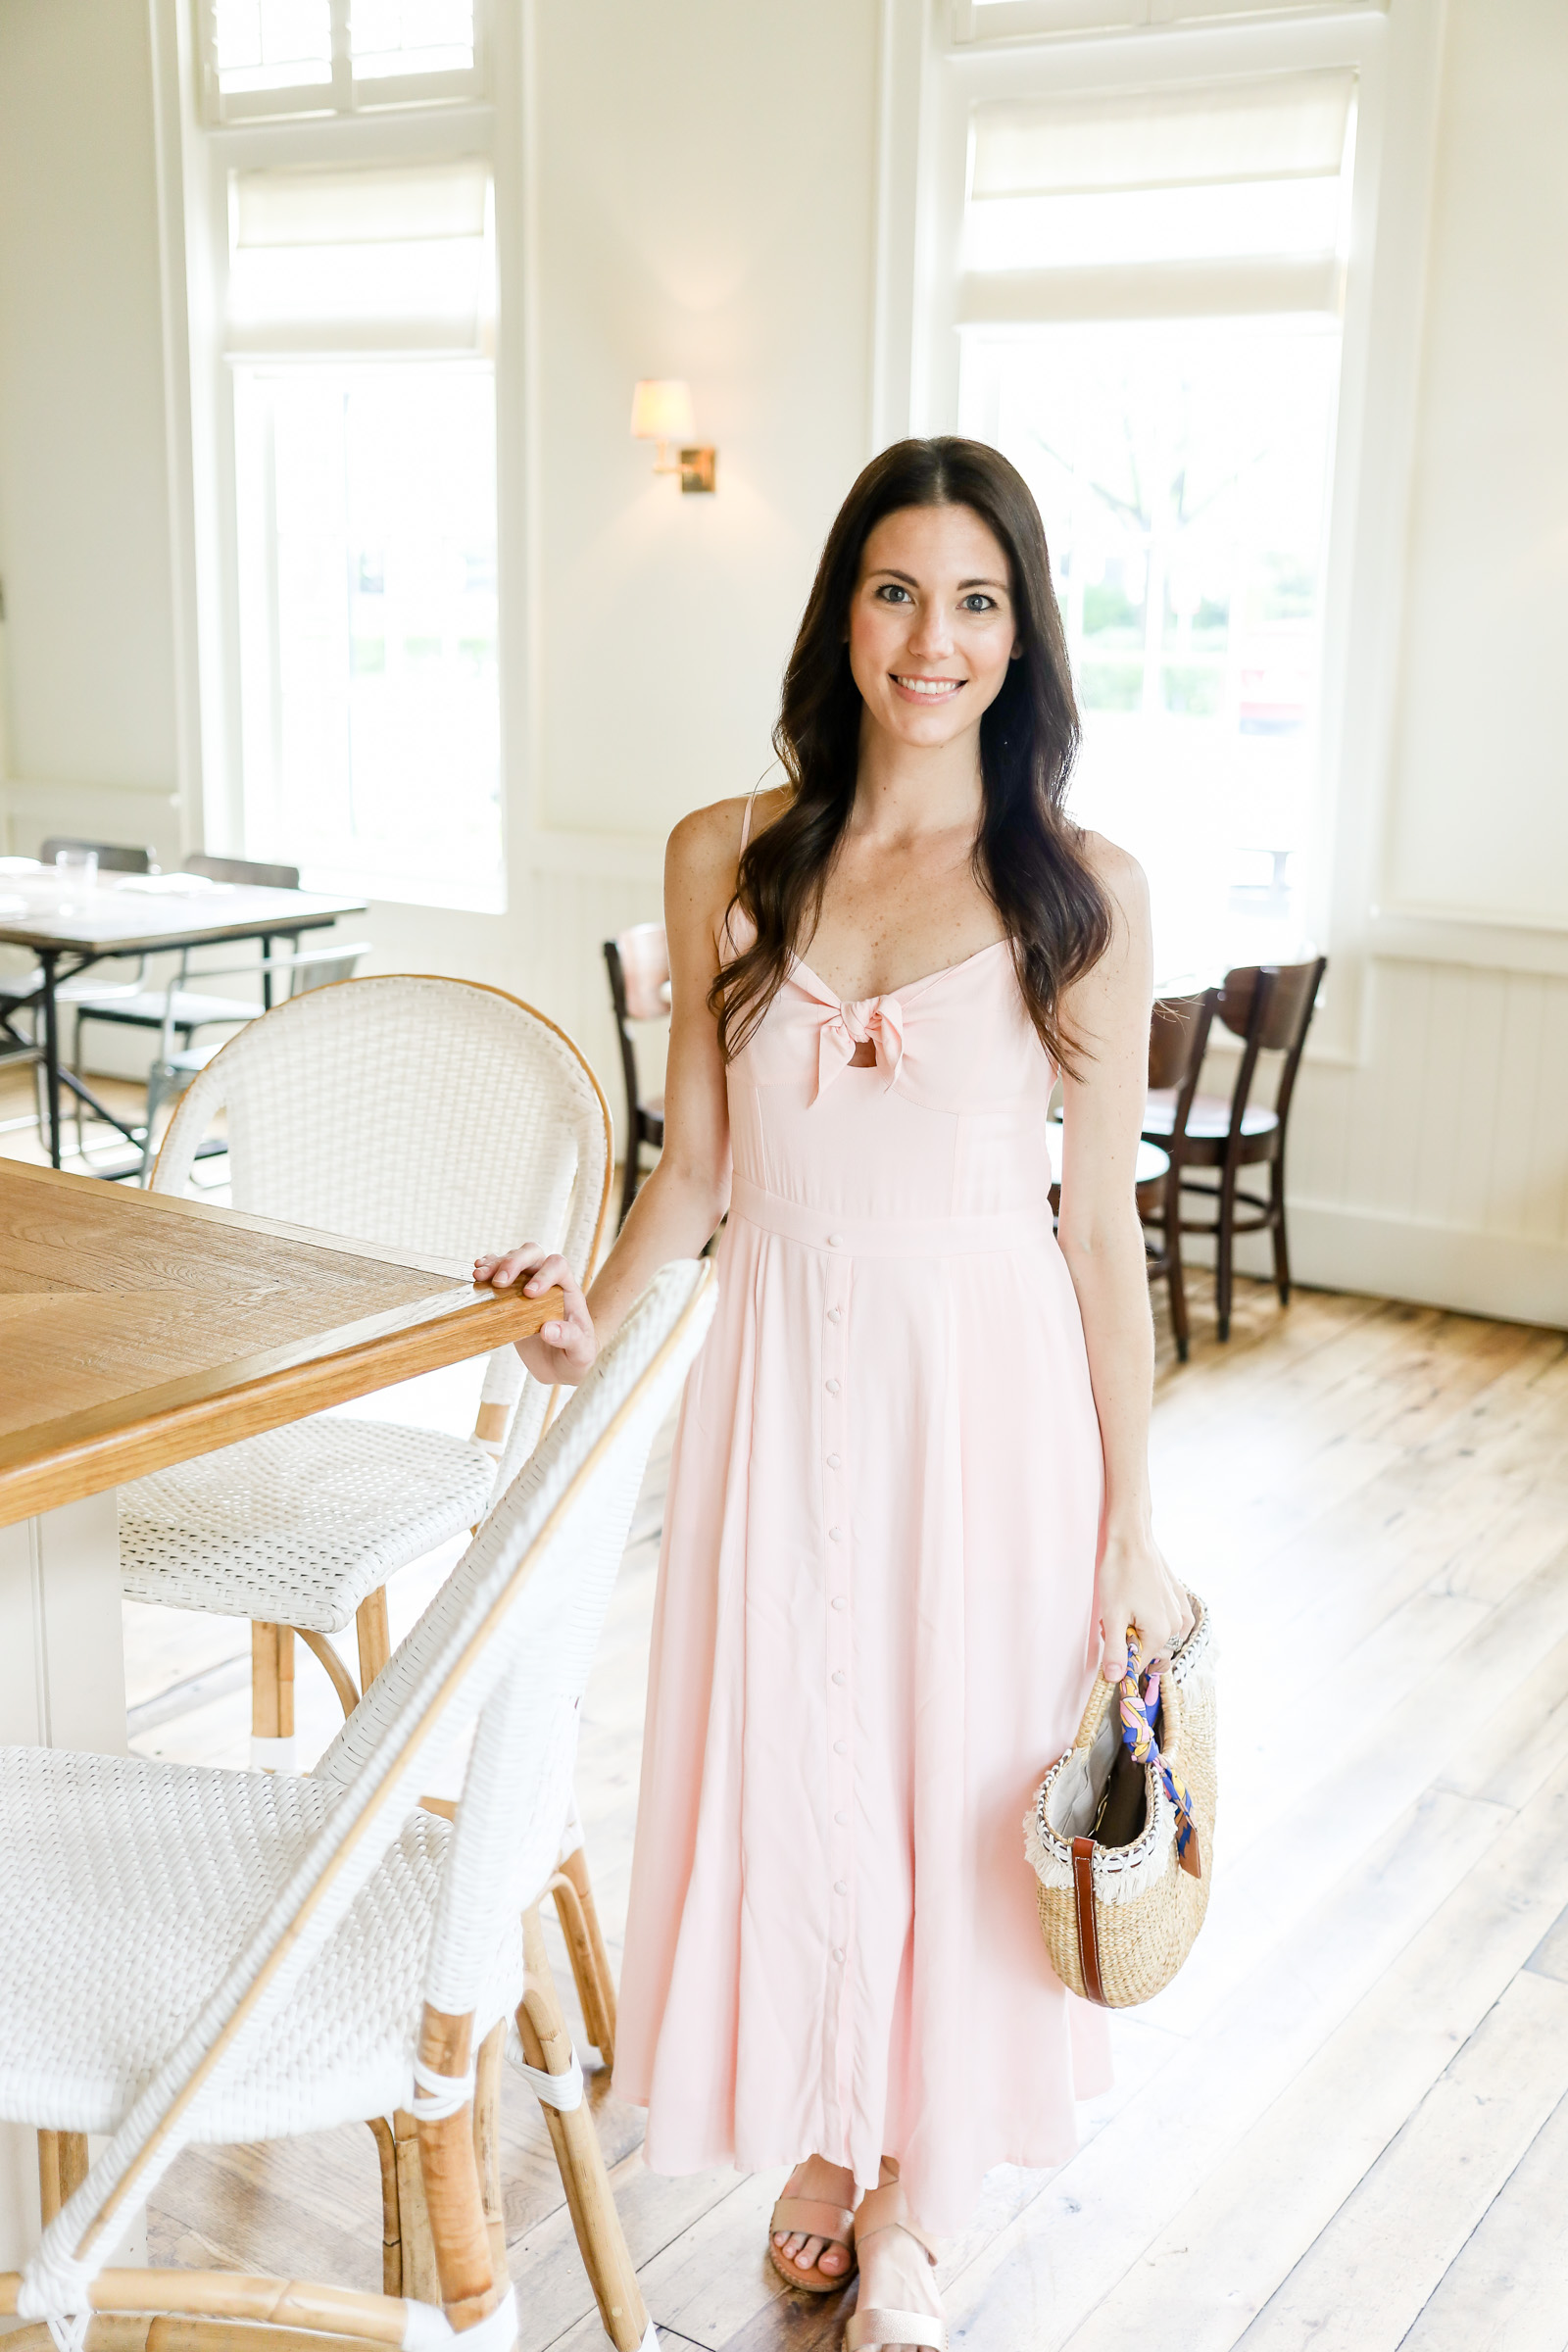 pink bow tie front dress by yumi kim | pink dress | straw tote | pink midi dress | every day joie by elle bowes